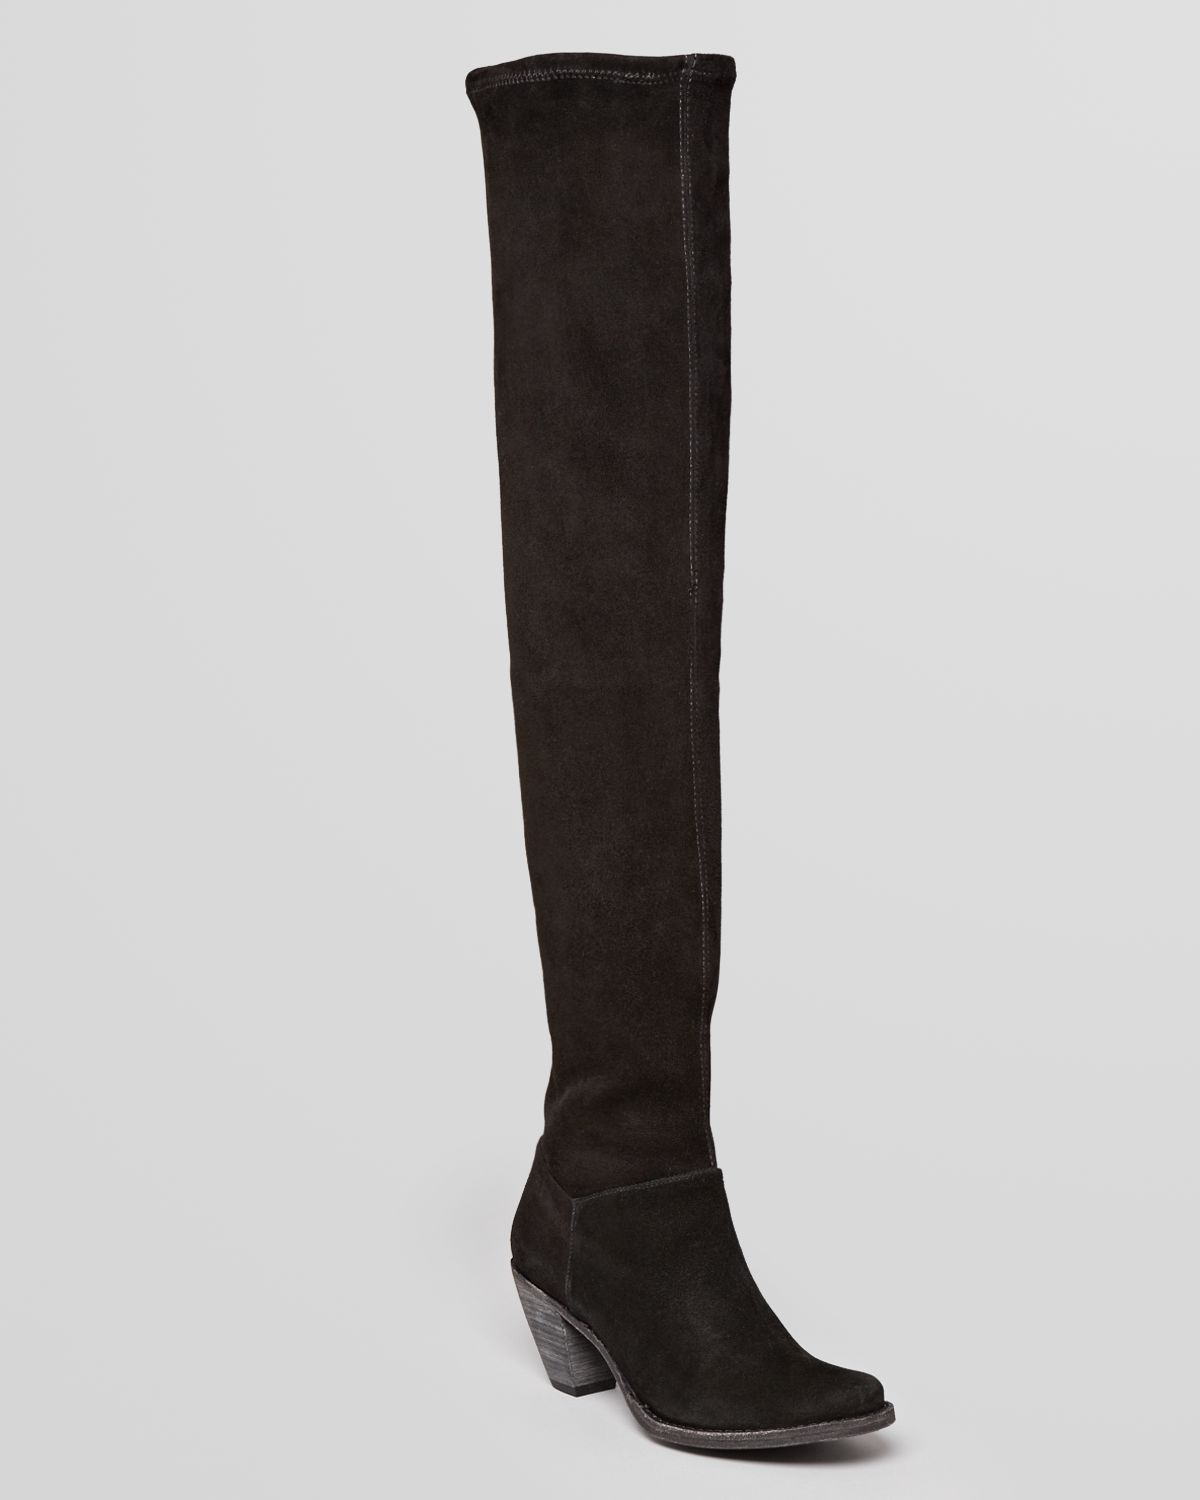 Alice   Olivia Over The Knee Boots - Cora Stretch | Bloomingdale's